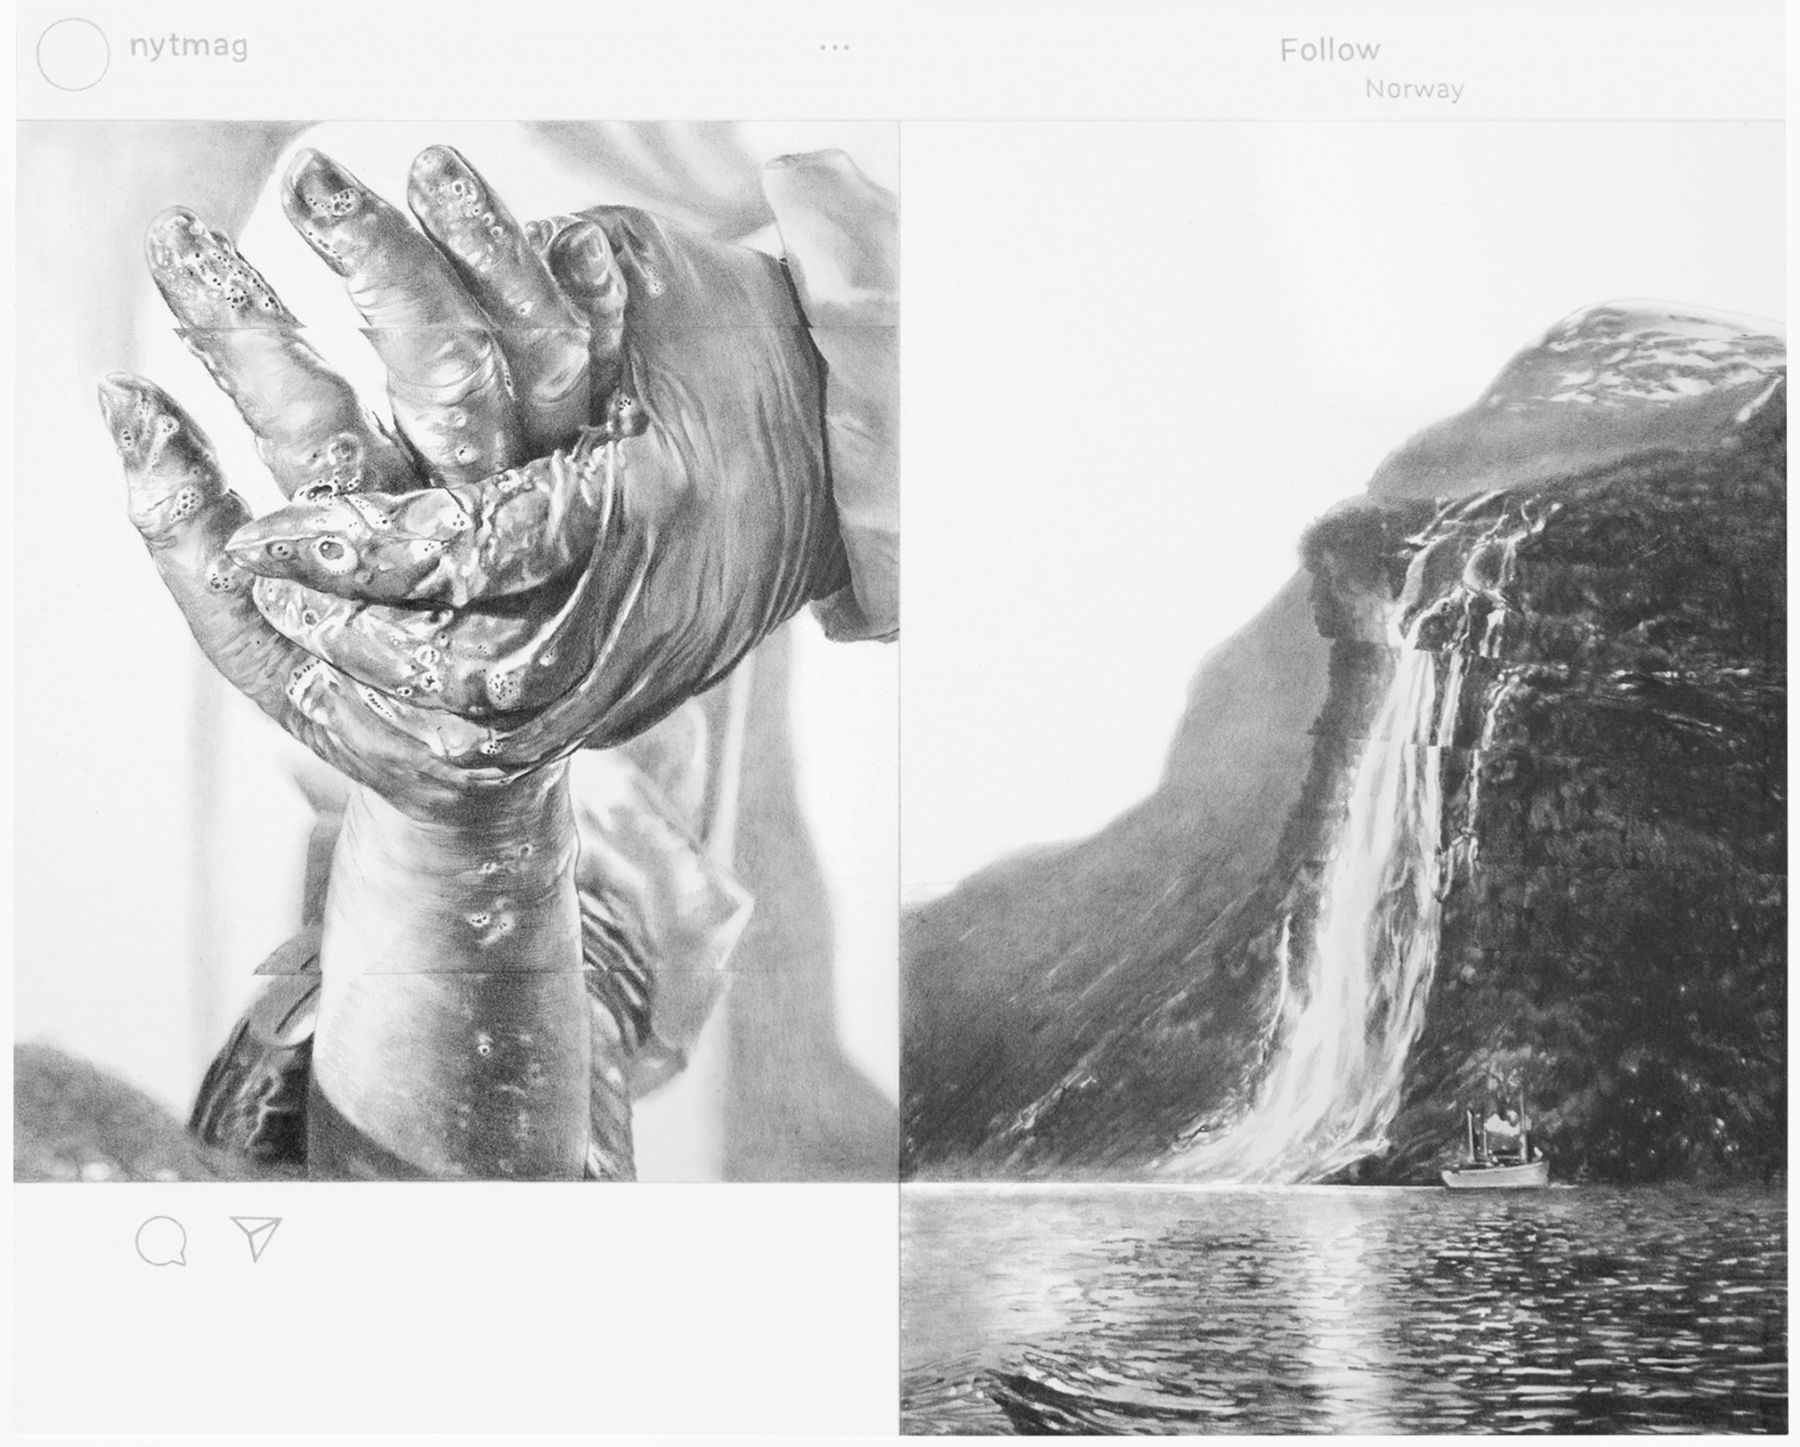 a detail view of a drawing based on two Instagram posts, one showing a closeup of hand washing and the one showing a boat on a lake in front of a waterfall